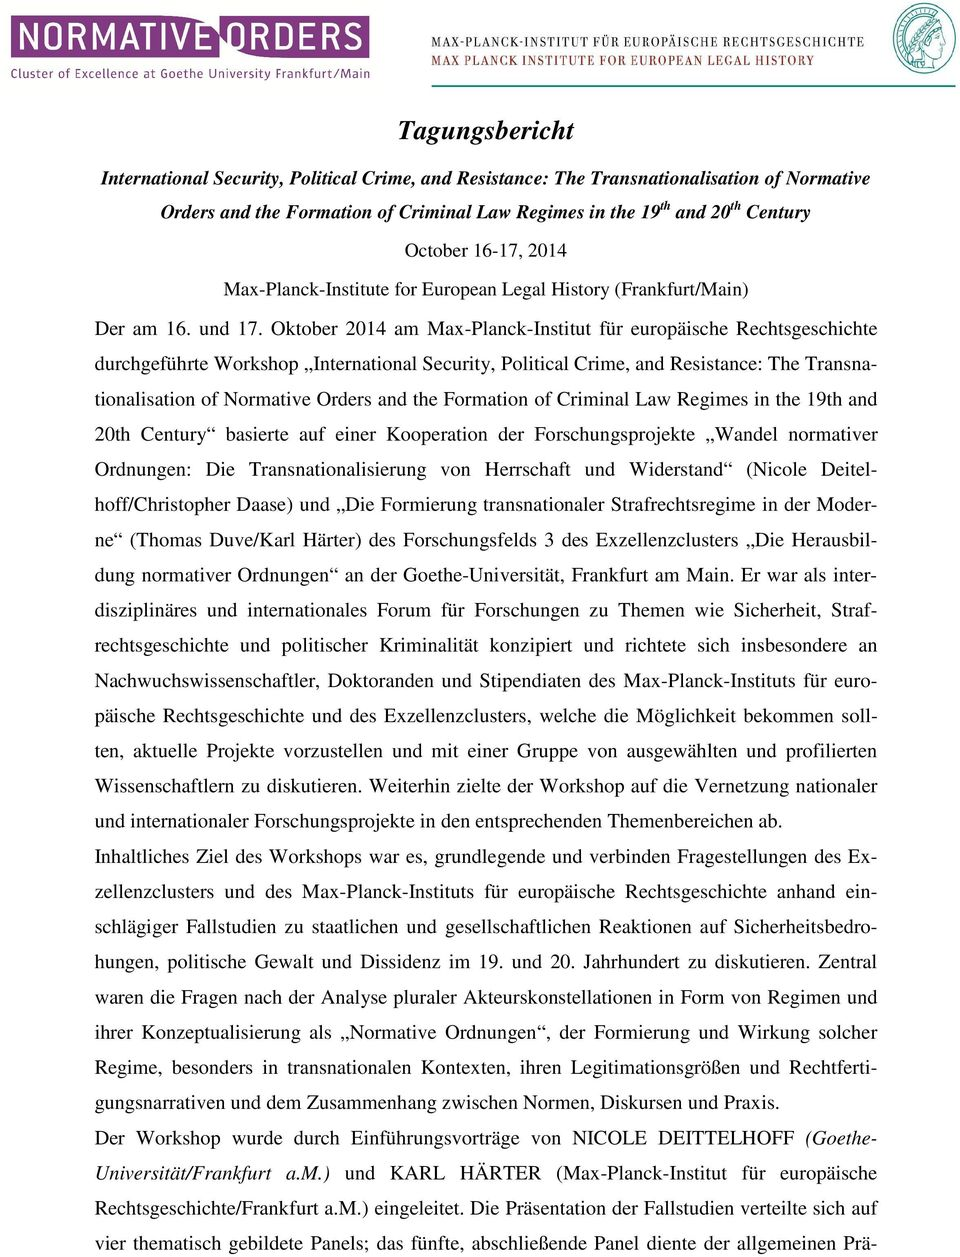 Oktober 2014 am Max-Planck-Institut für europäische Rechtsgeschichte durchgeführte Workshop International Security, Political Crime, and Resistance: The Transnationalisation of Normative Orders and